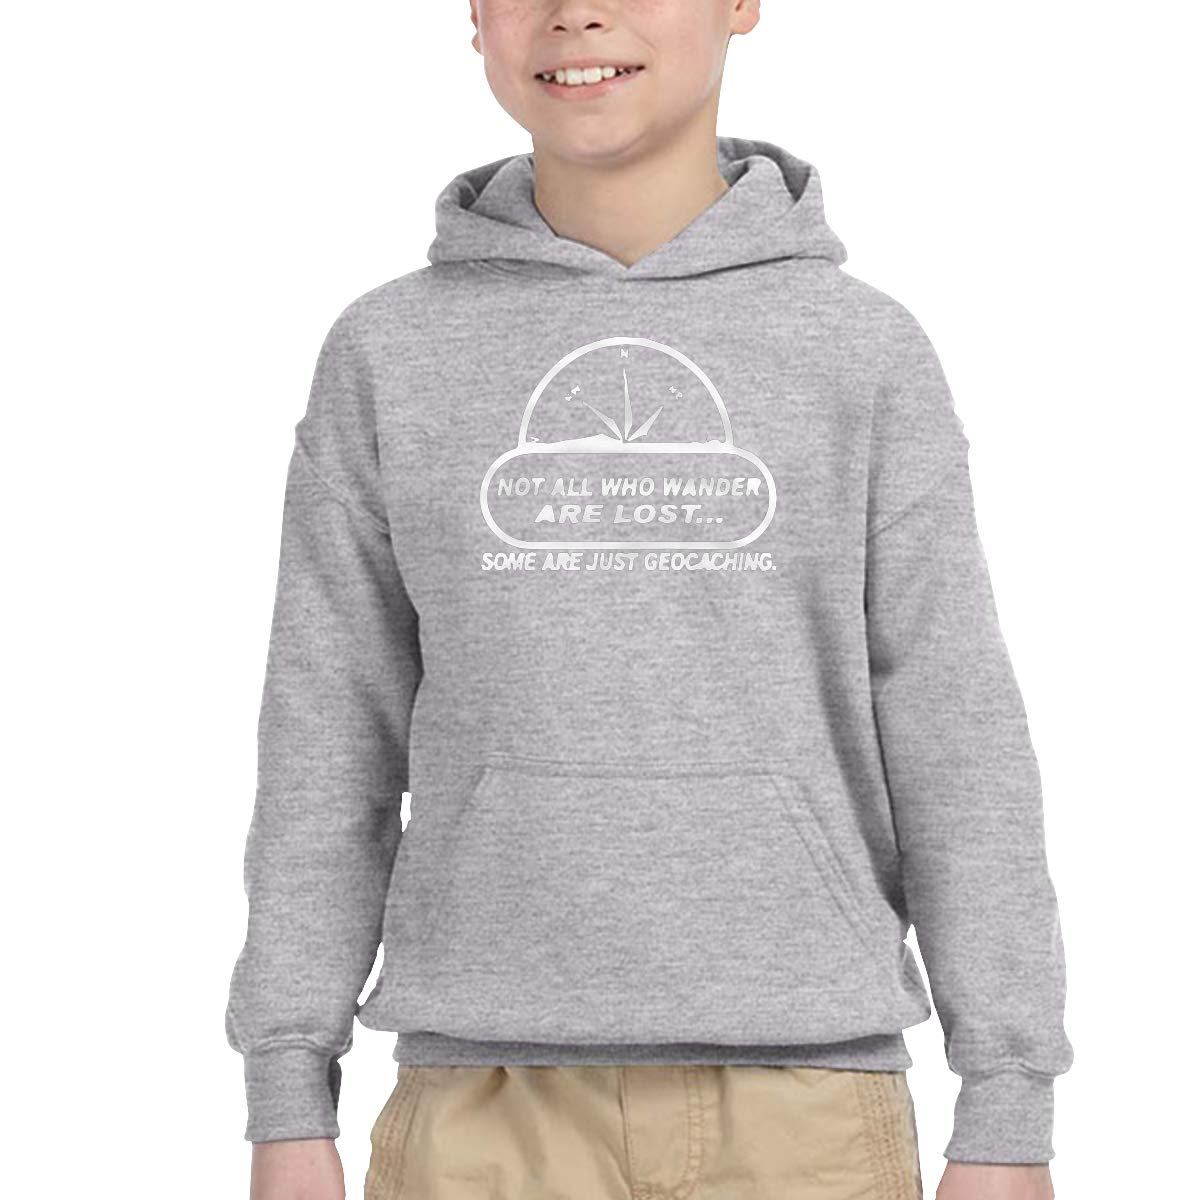 2-6 Year Old Childrens Hooded Pocket Sweater Classical Elegance and Originality Not All Wander Lost Geocaching Logo Gray 2T